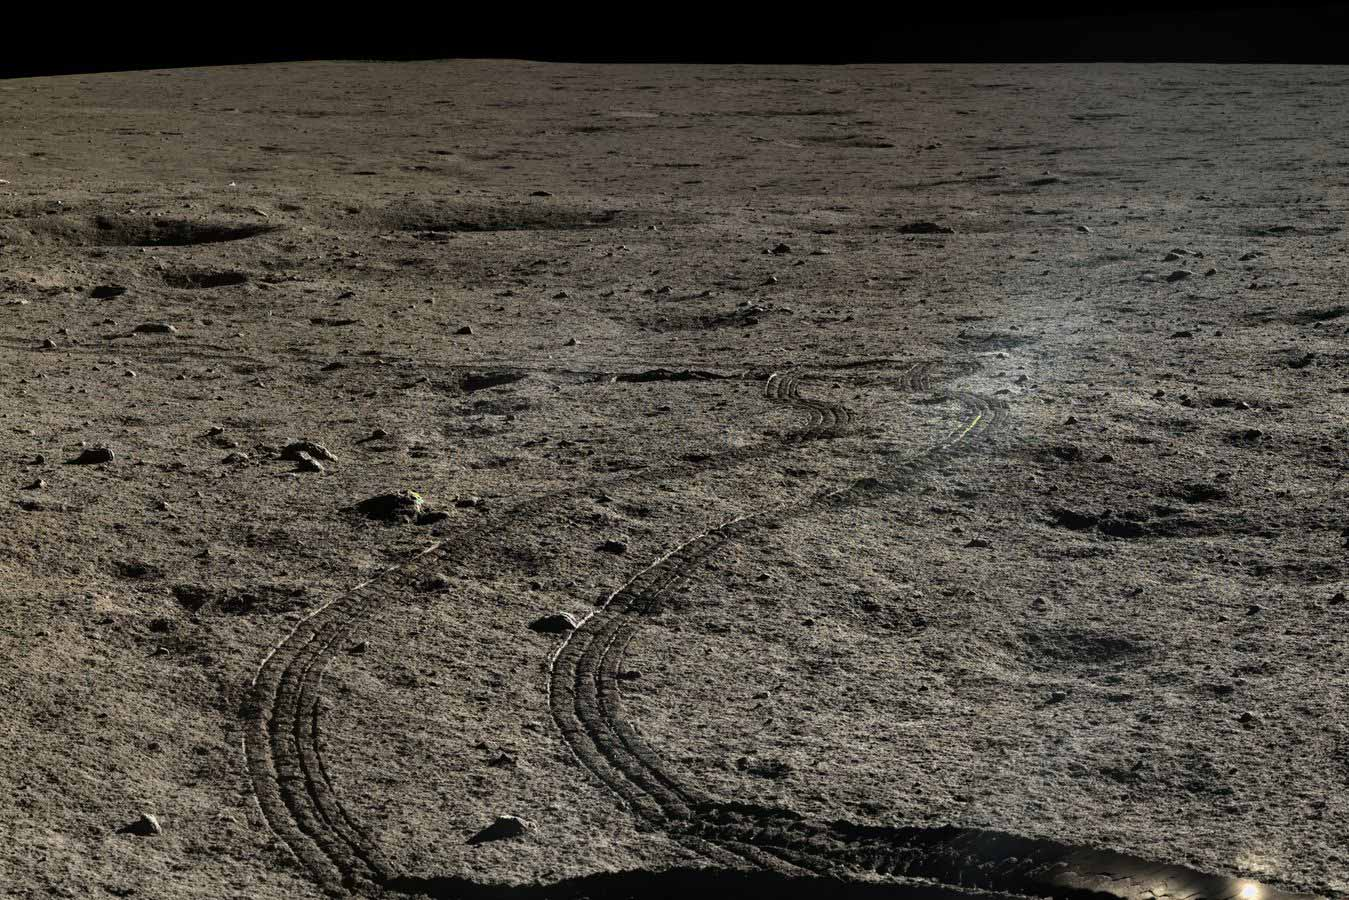 lune-chine-yutu-chang-e-3-tracks-in-the-regolith